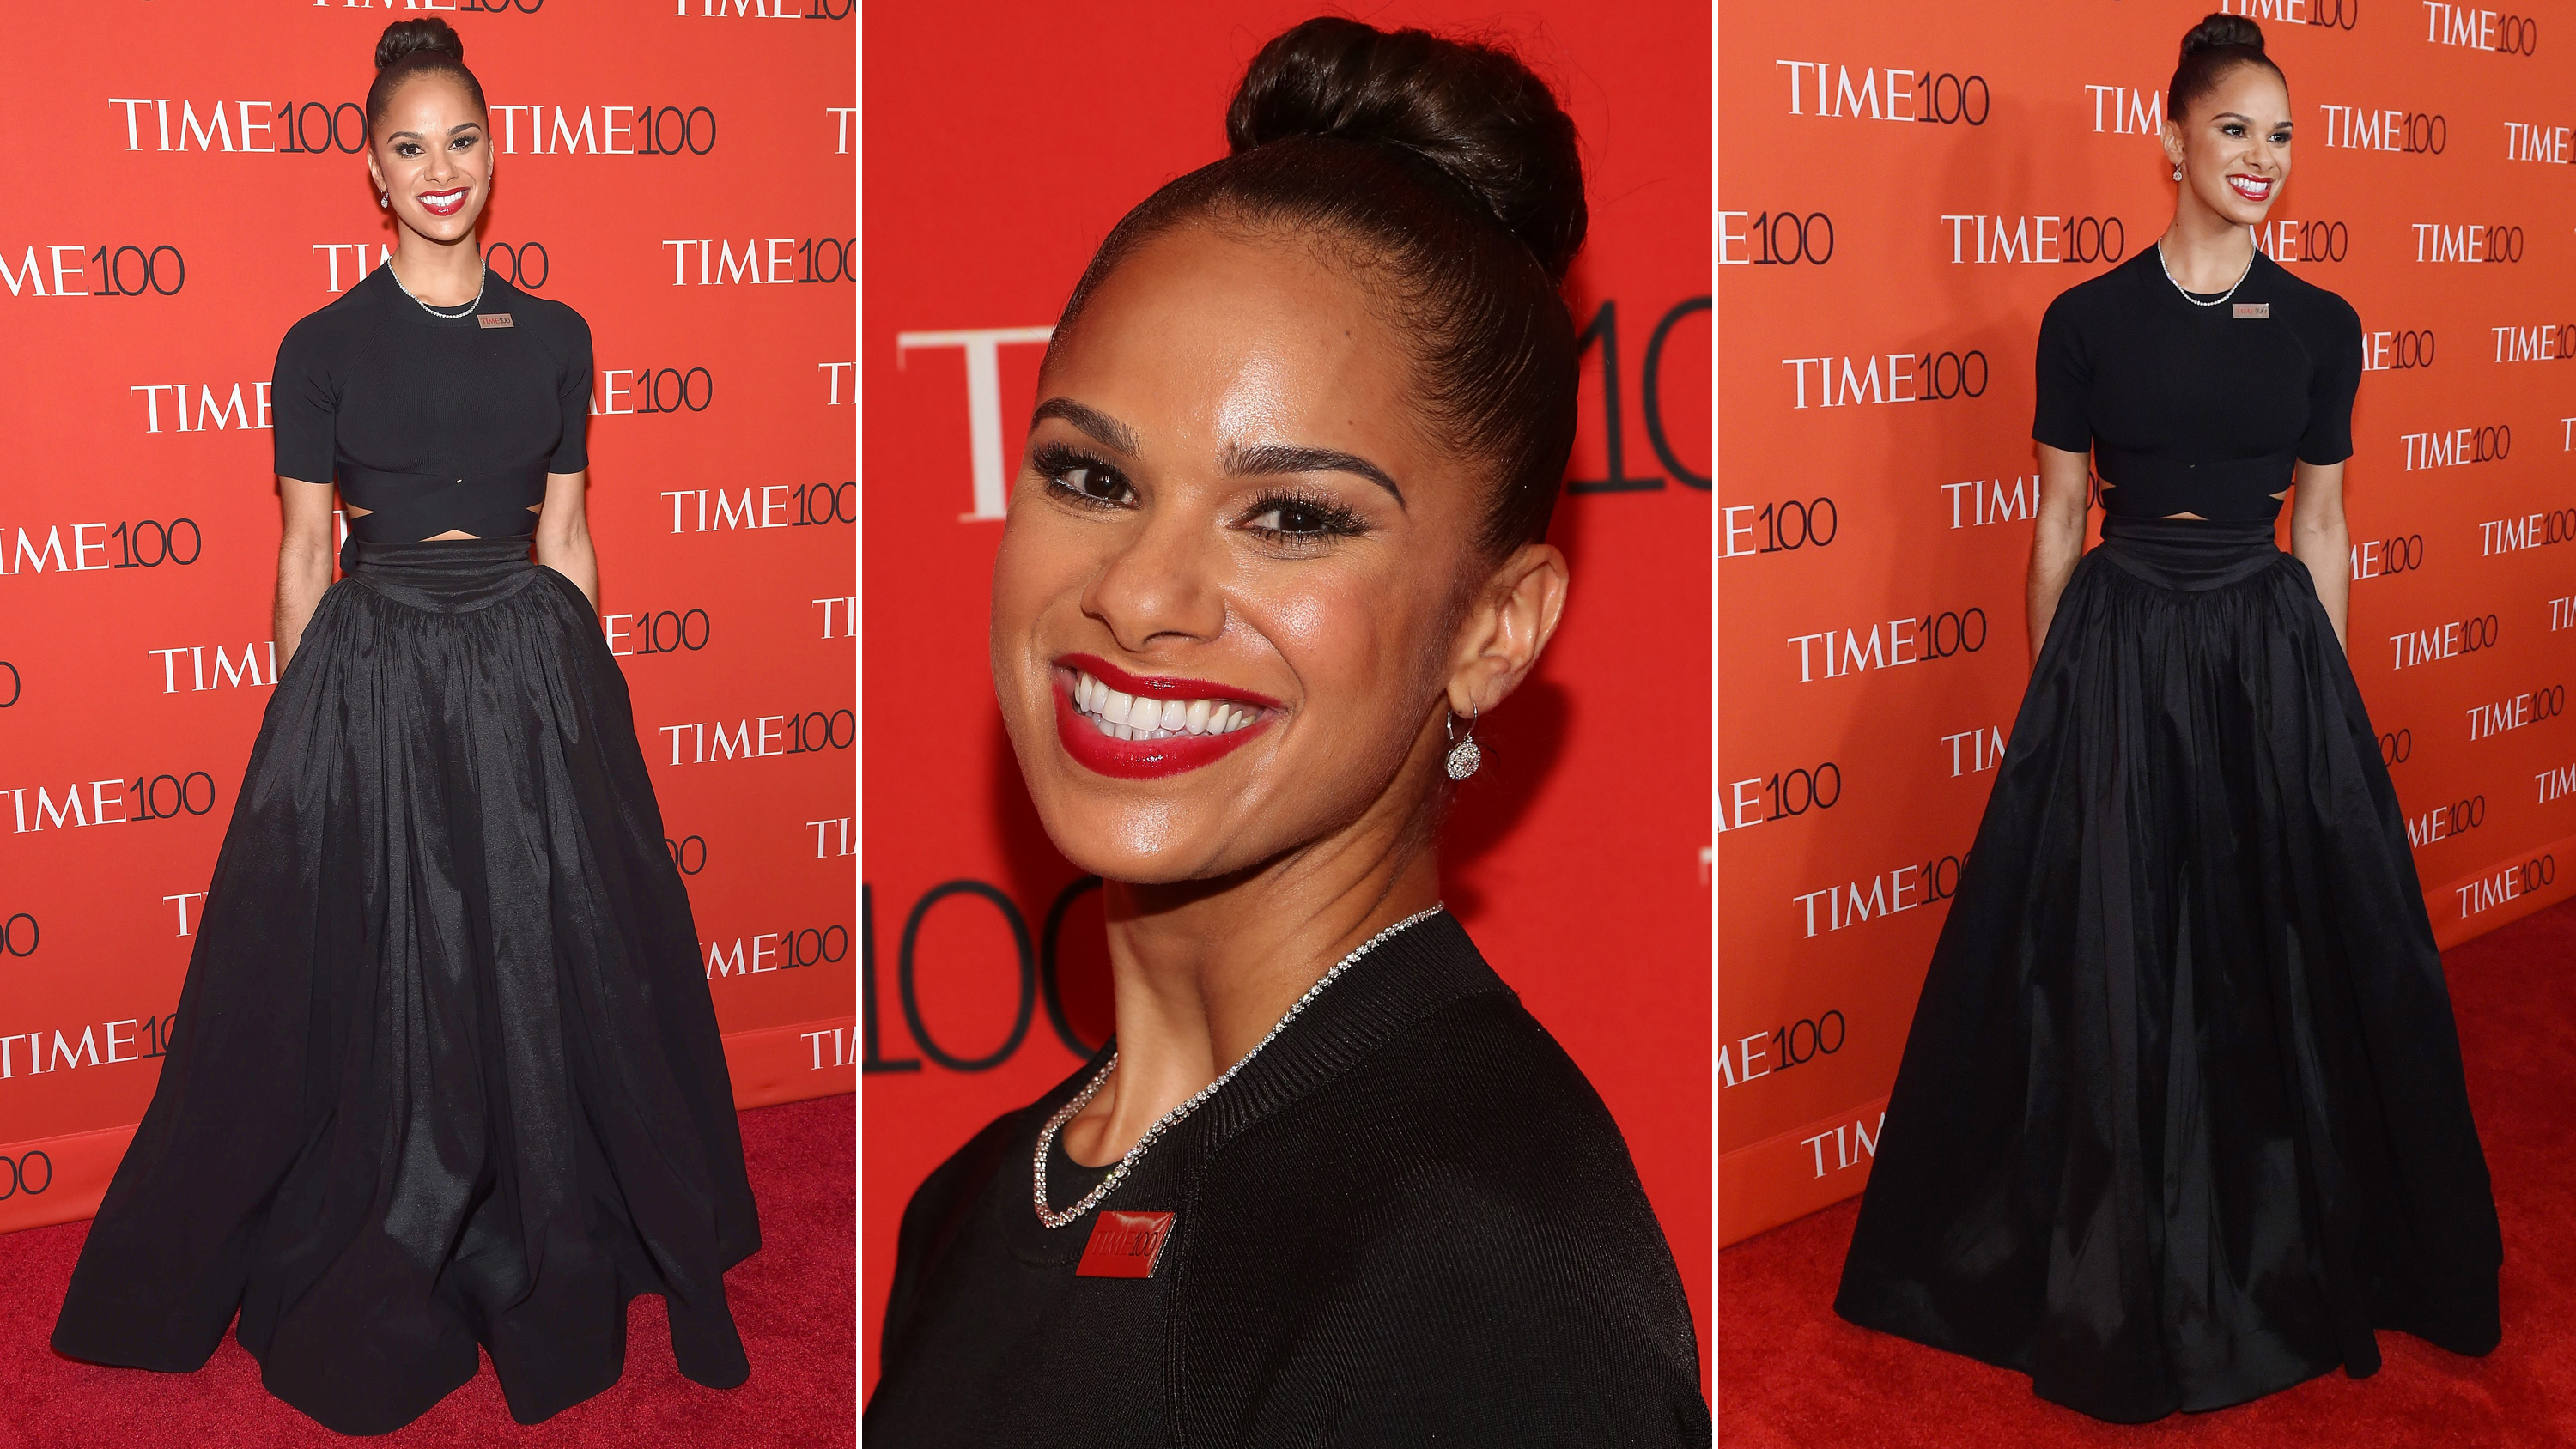 misty-copeland-time-100-gowns